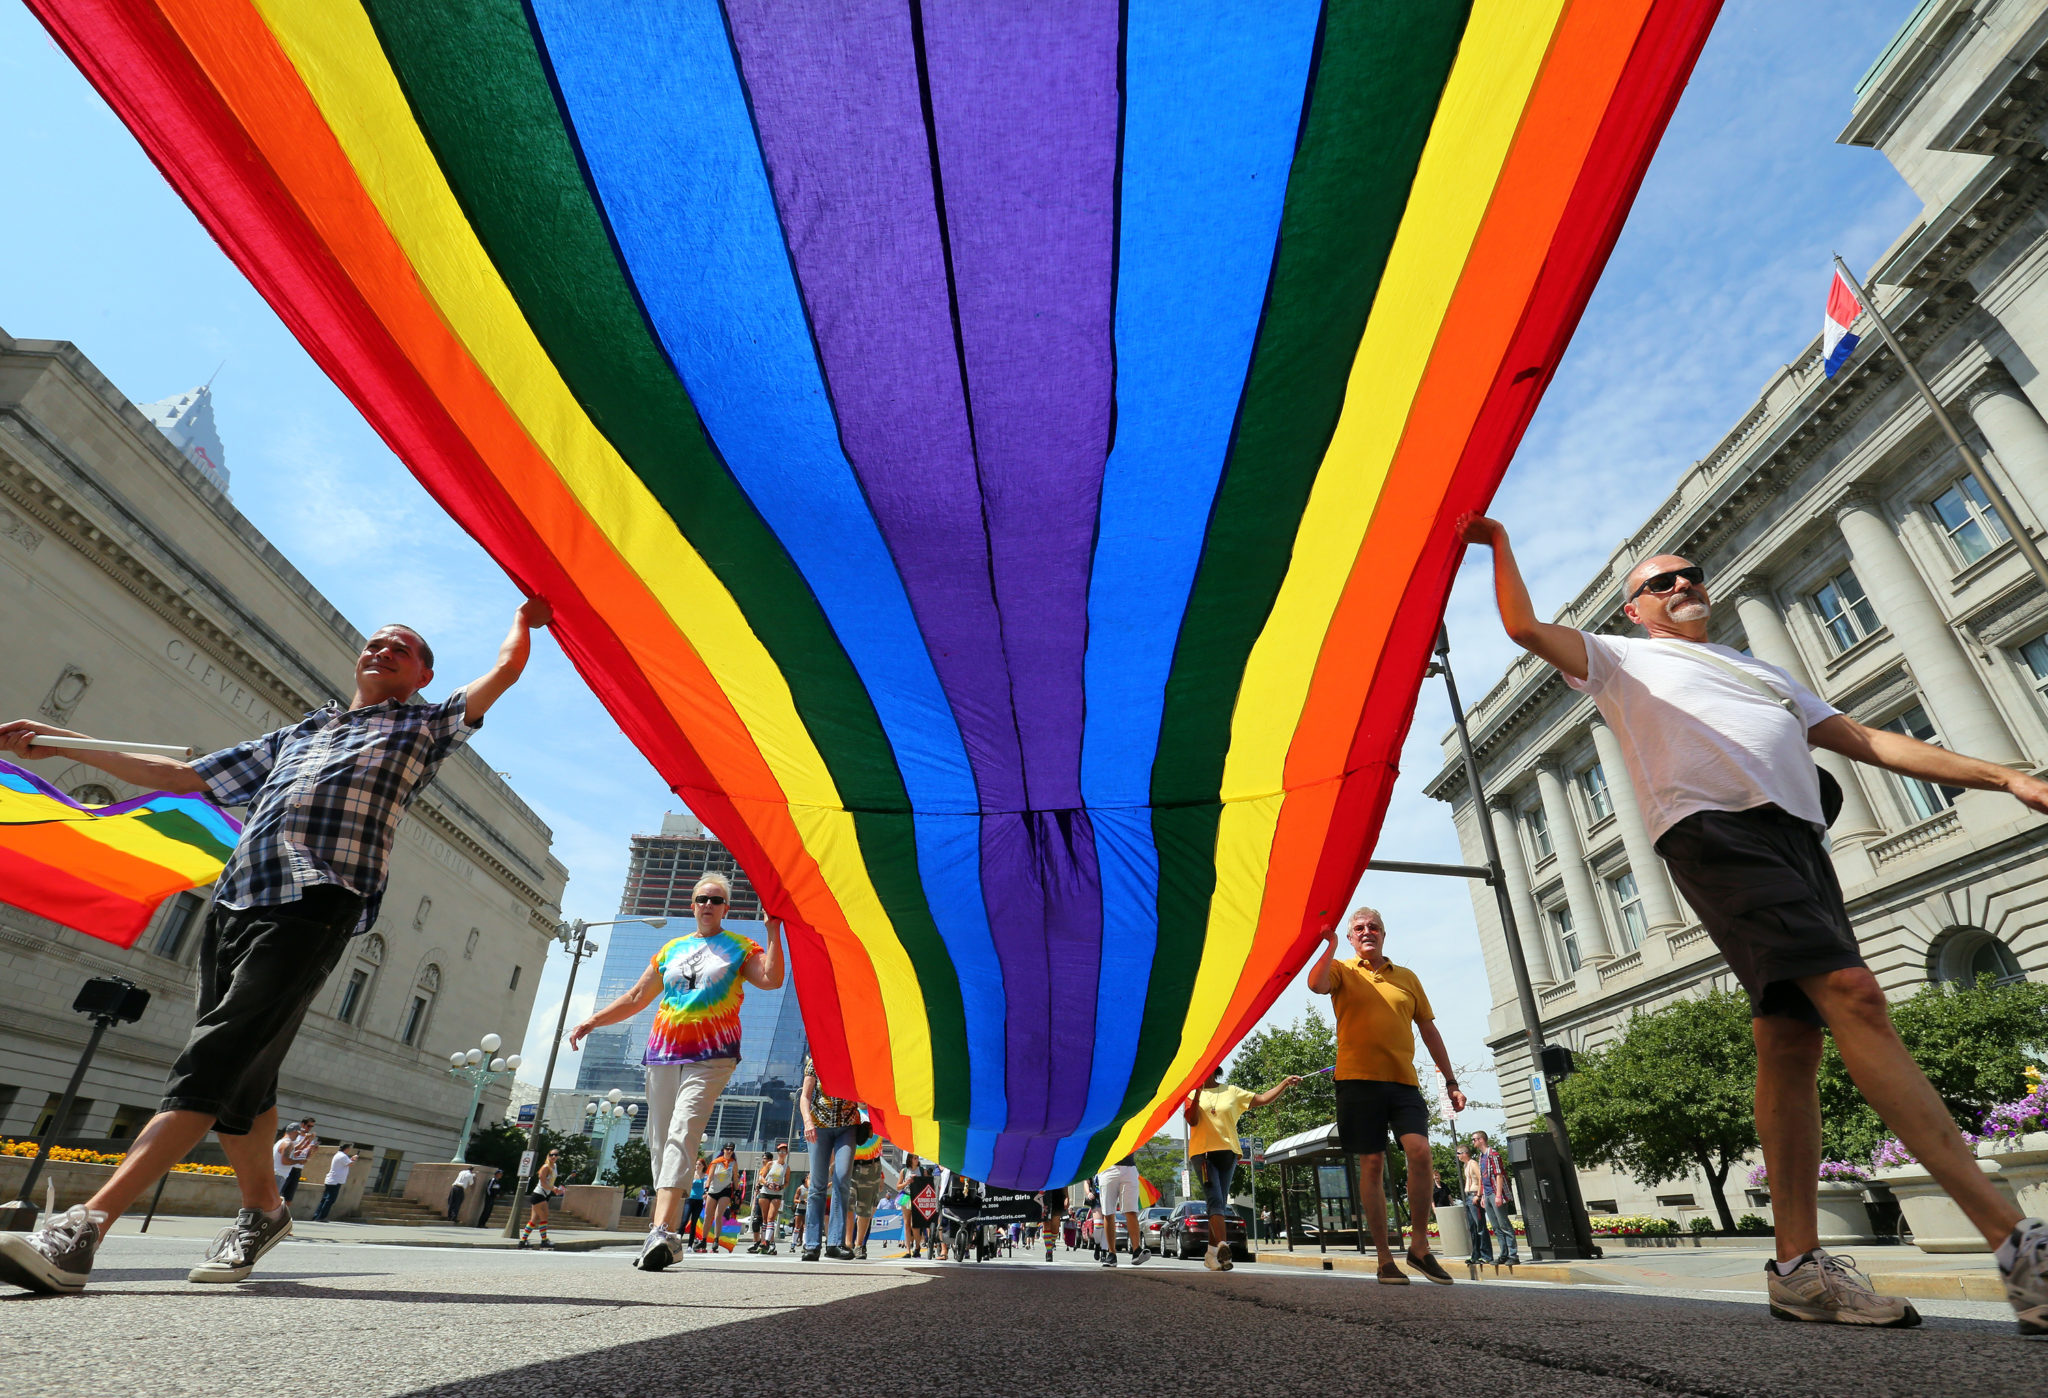 ***A FAVORITE Picture**** Parade Goers Carry A Huge Rainbow Flag Past City Hall On Lakeside Avenue During The 27th Annual Cleveland Pride Parade On Saturday Aug. 8, 2015. The Parade And Festival Was Billed As Cleveland Pride 2015 Rewind Because The Originally Scheduled Day Succumbed To Bad Weather In June. About 1,500 Participants Marched In The Parade East Down Lakeside Avenue And North On East Ninth Street To Voinovich Park (Lisa DeJong/The Plain Dealer) ORG XMIT: CLE1508081745339902